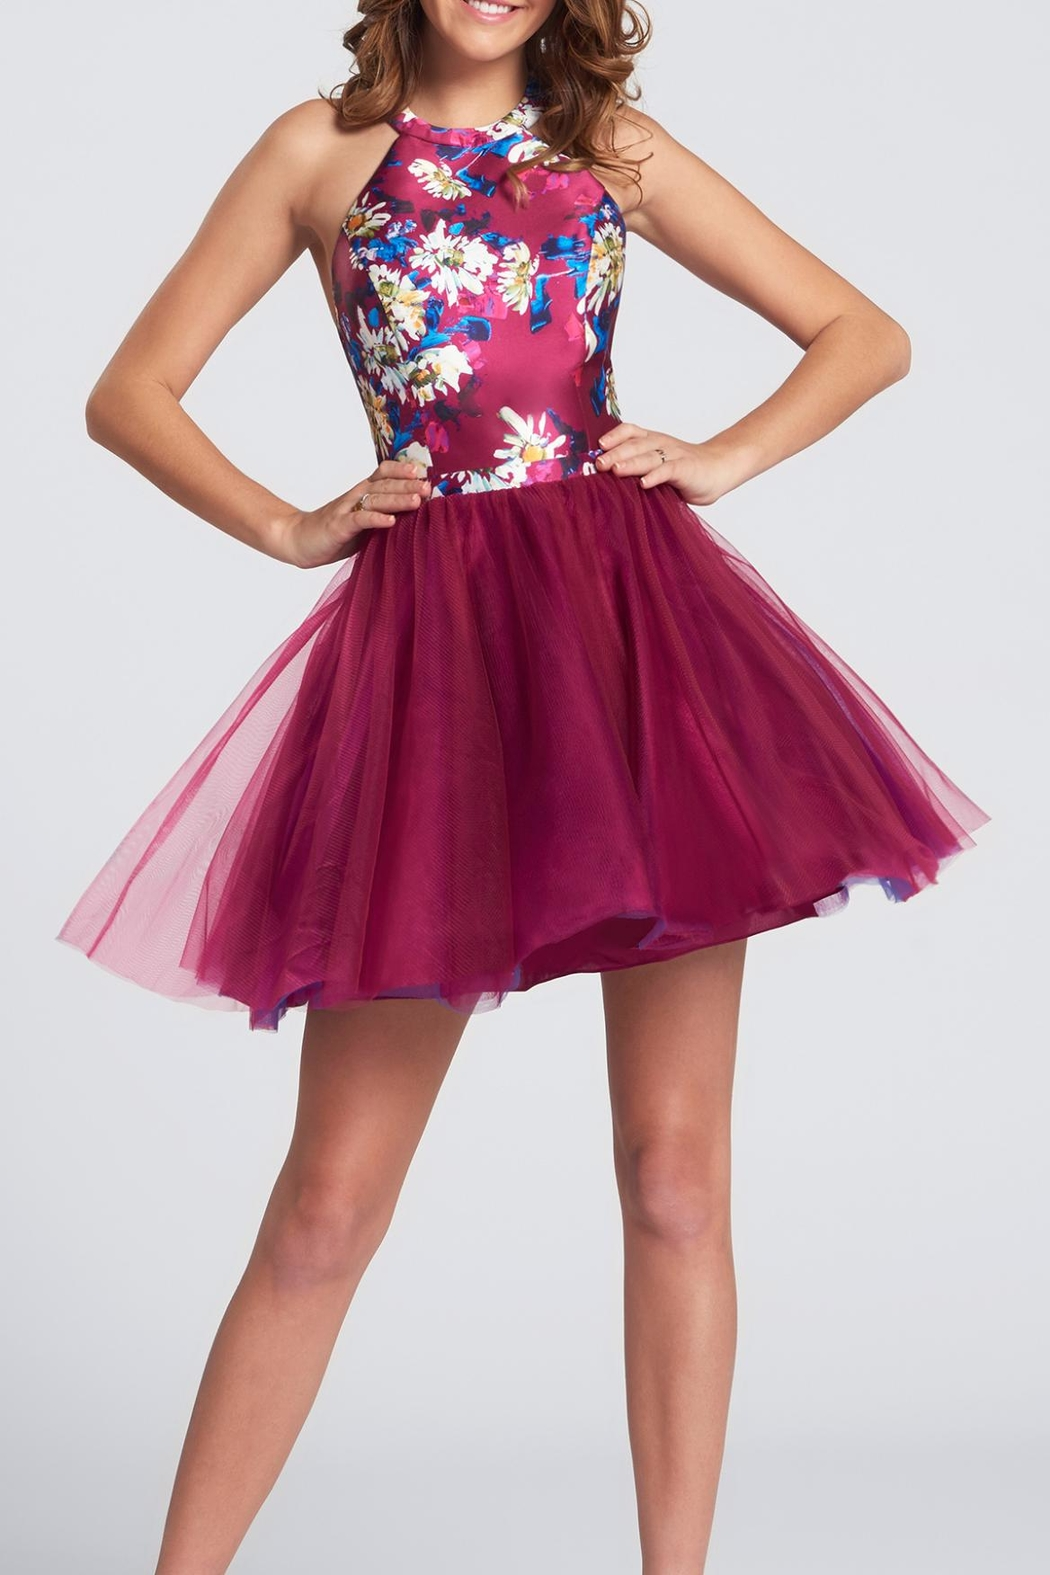 Ellie Wilde Short Halter Homecoming Dress - Front Cropped Image